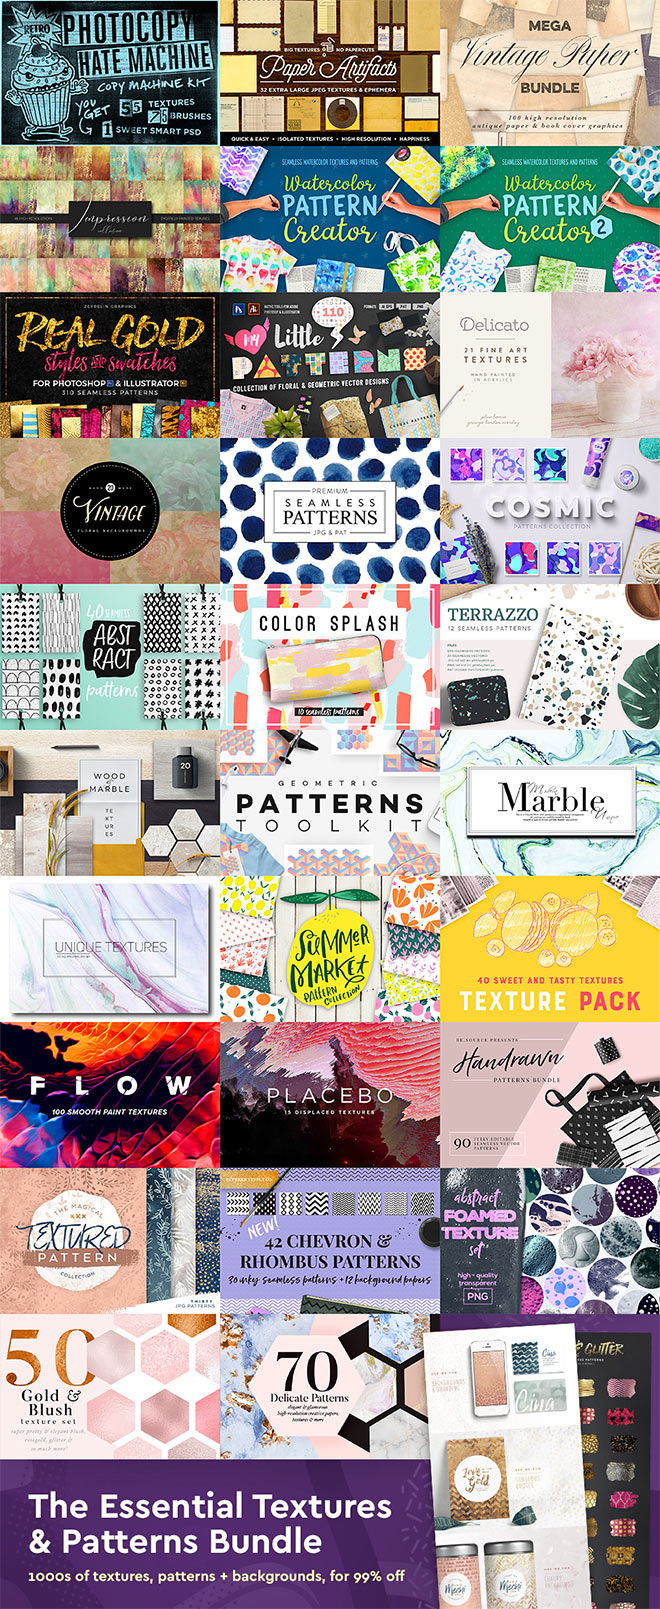 The Essential Textures & Patterns Bundle